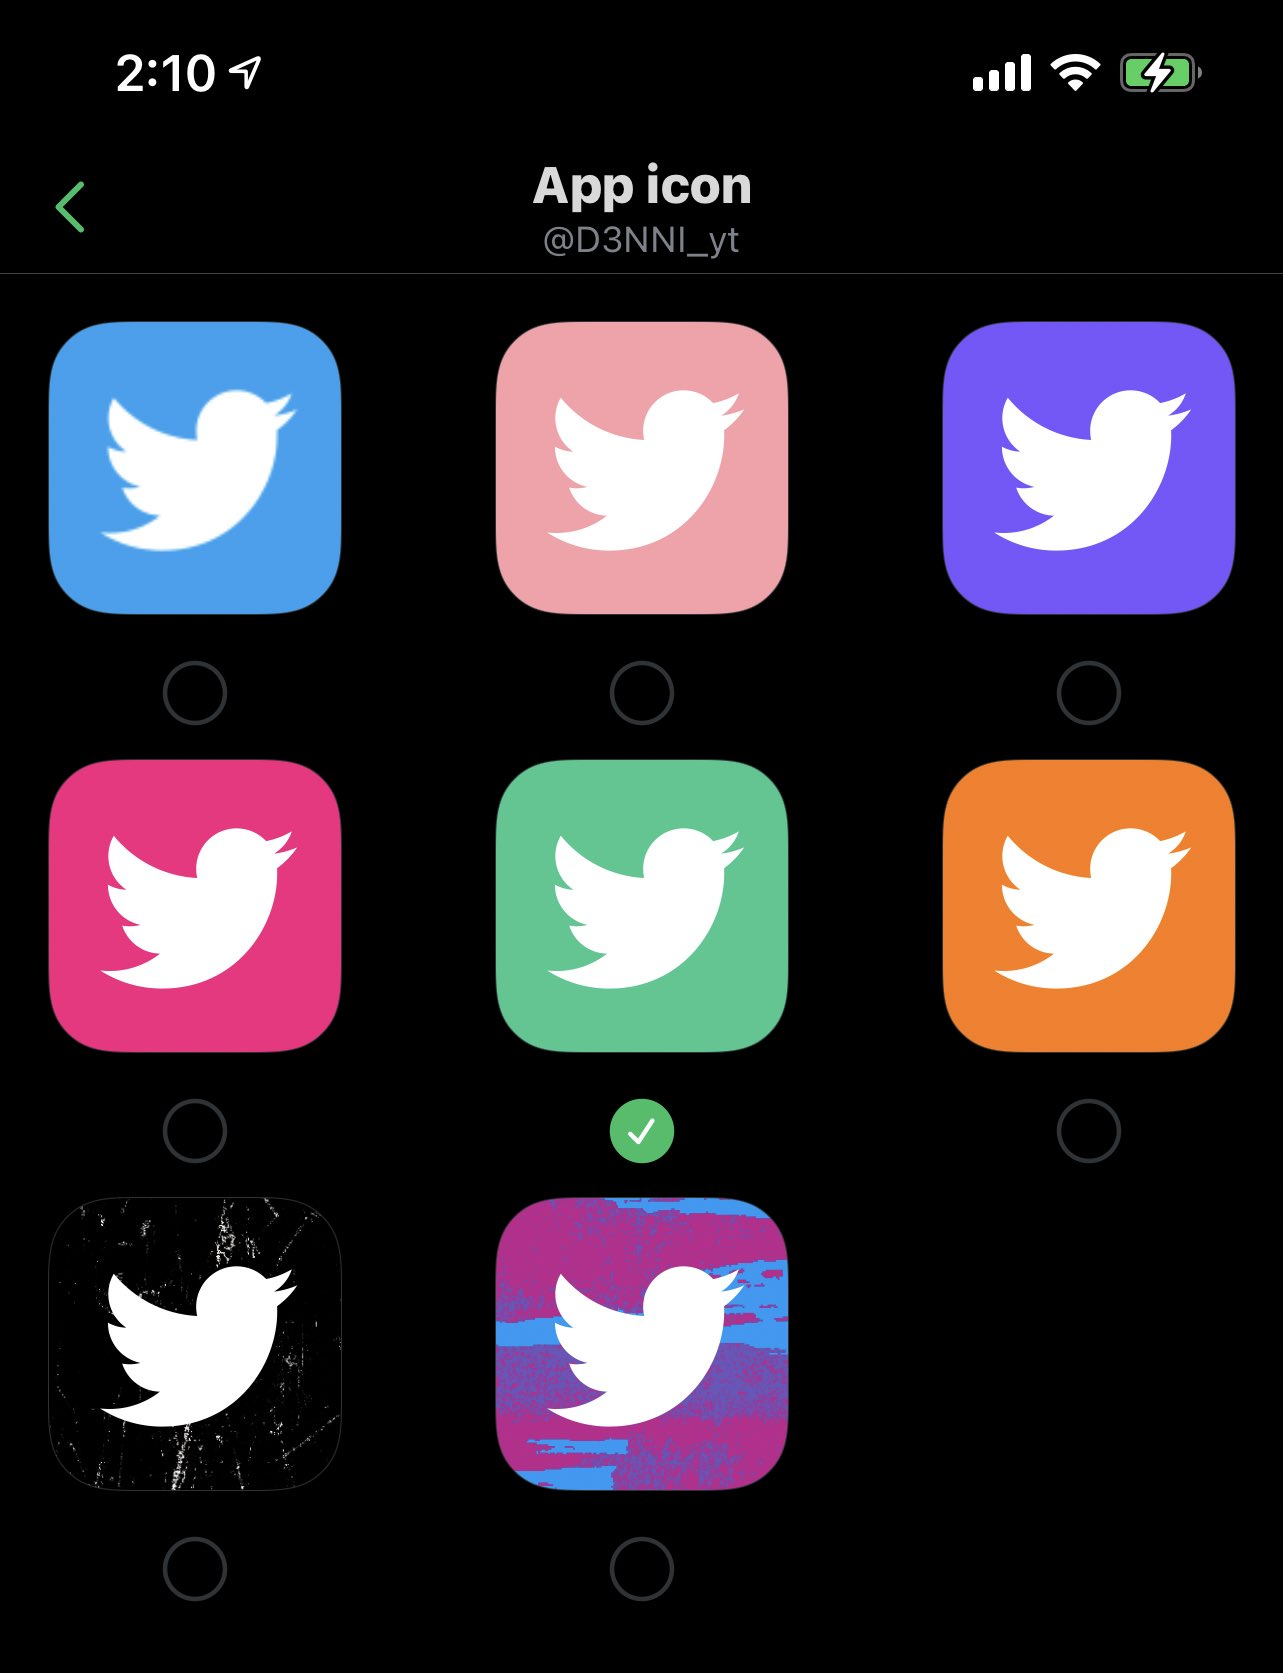 Changing Of Themes And App Icons